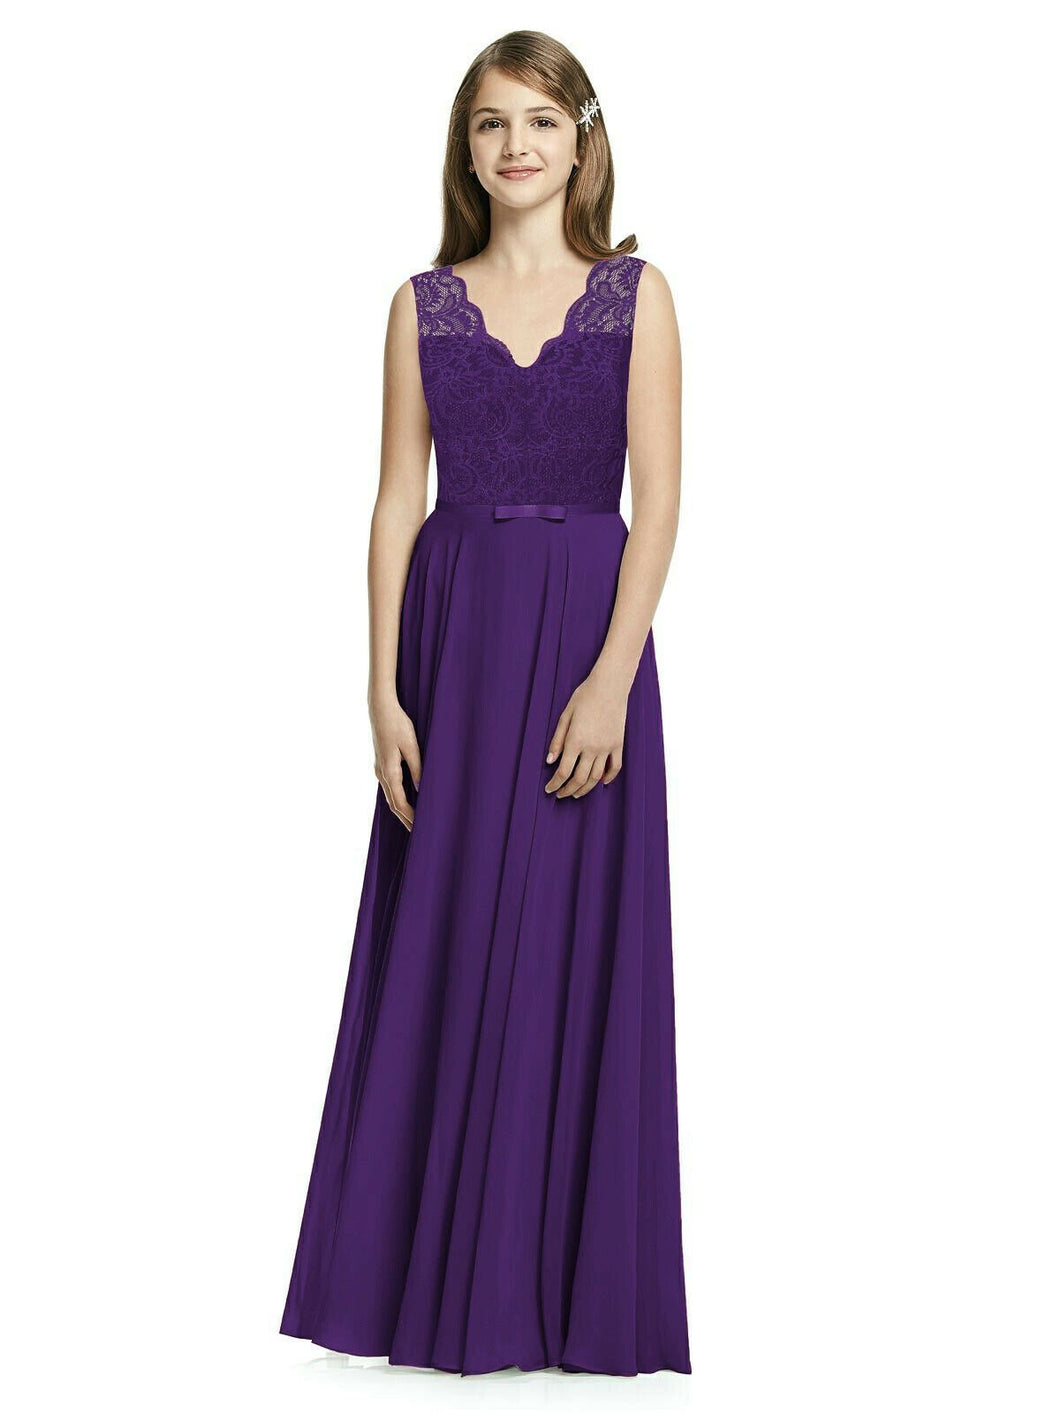 Cadbury Purple meghan lace chiffon vneck junior flower girl bridesmaid dress loulous bridal boutique ltd